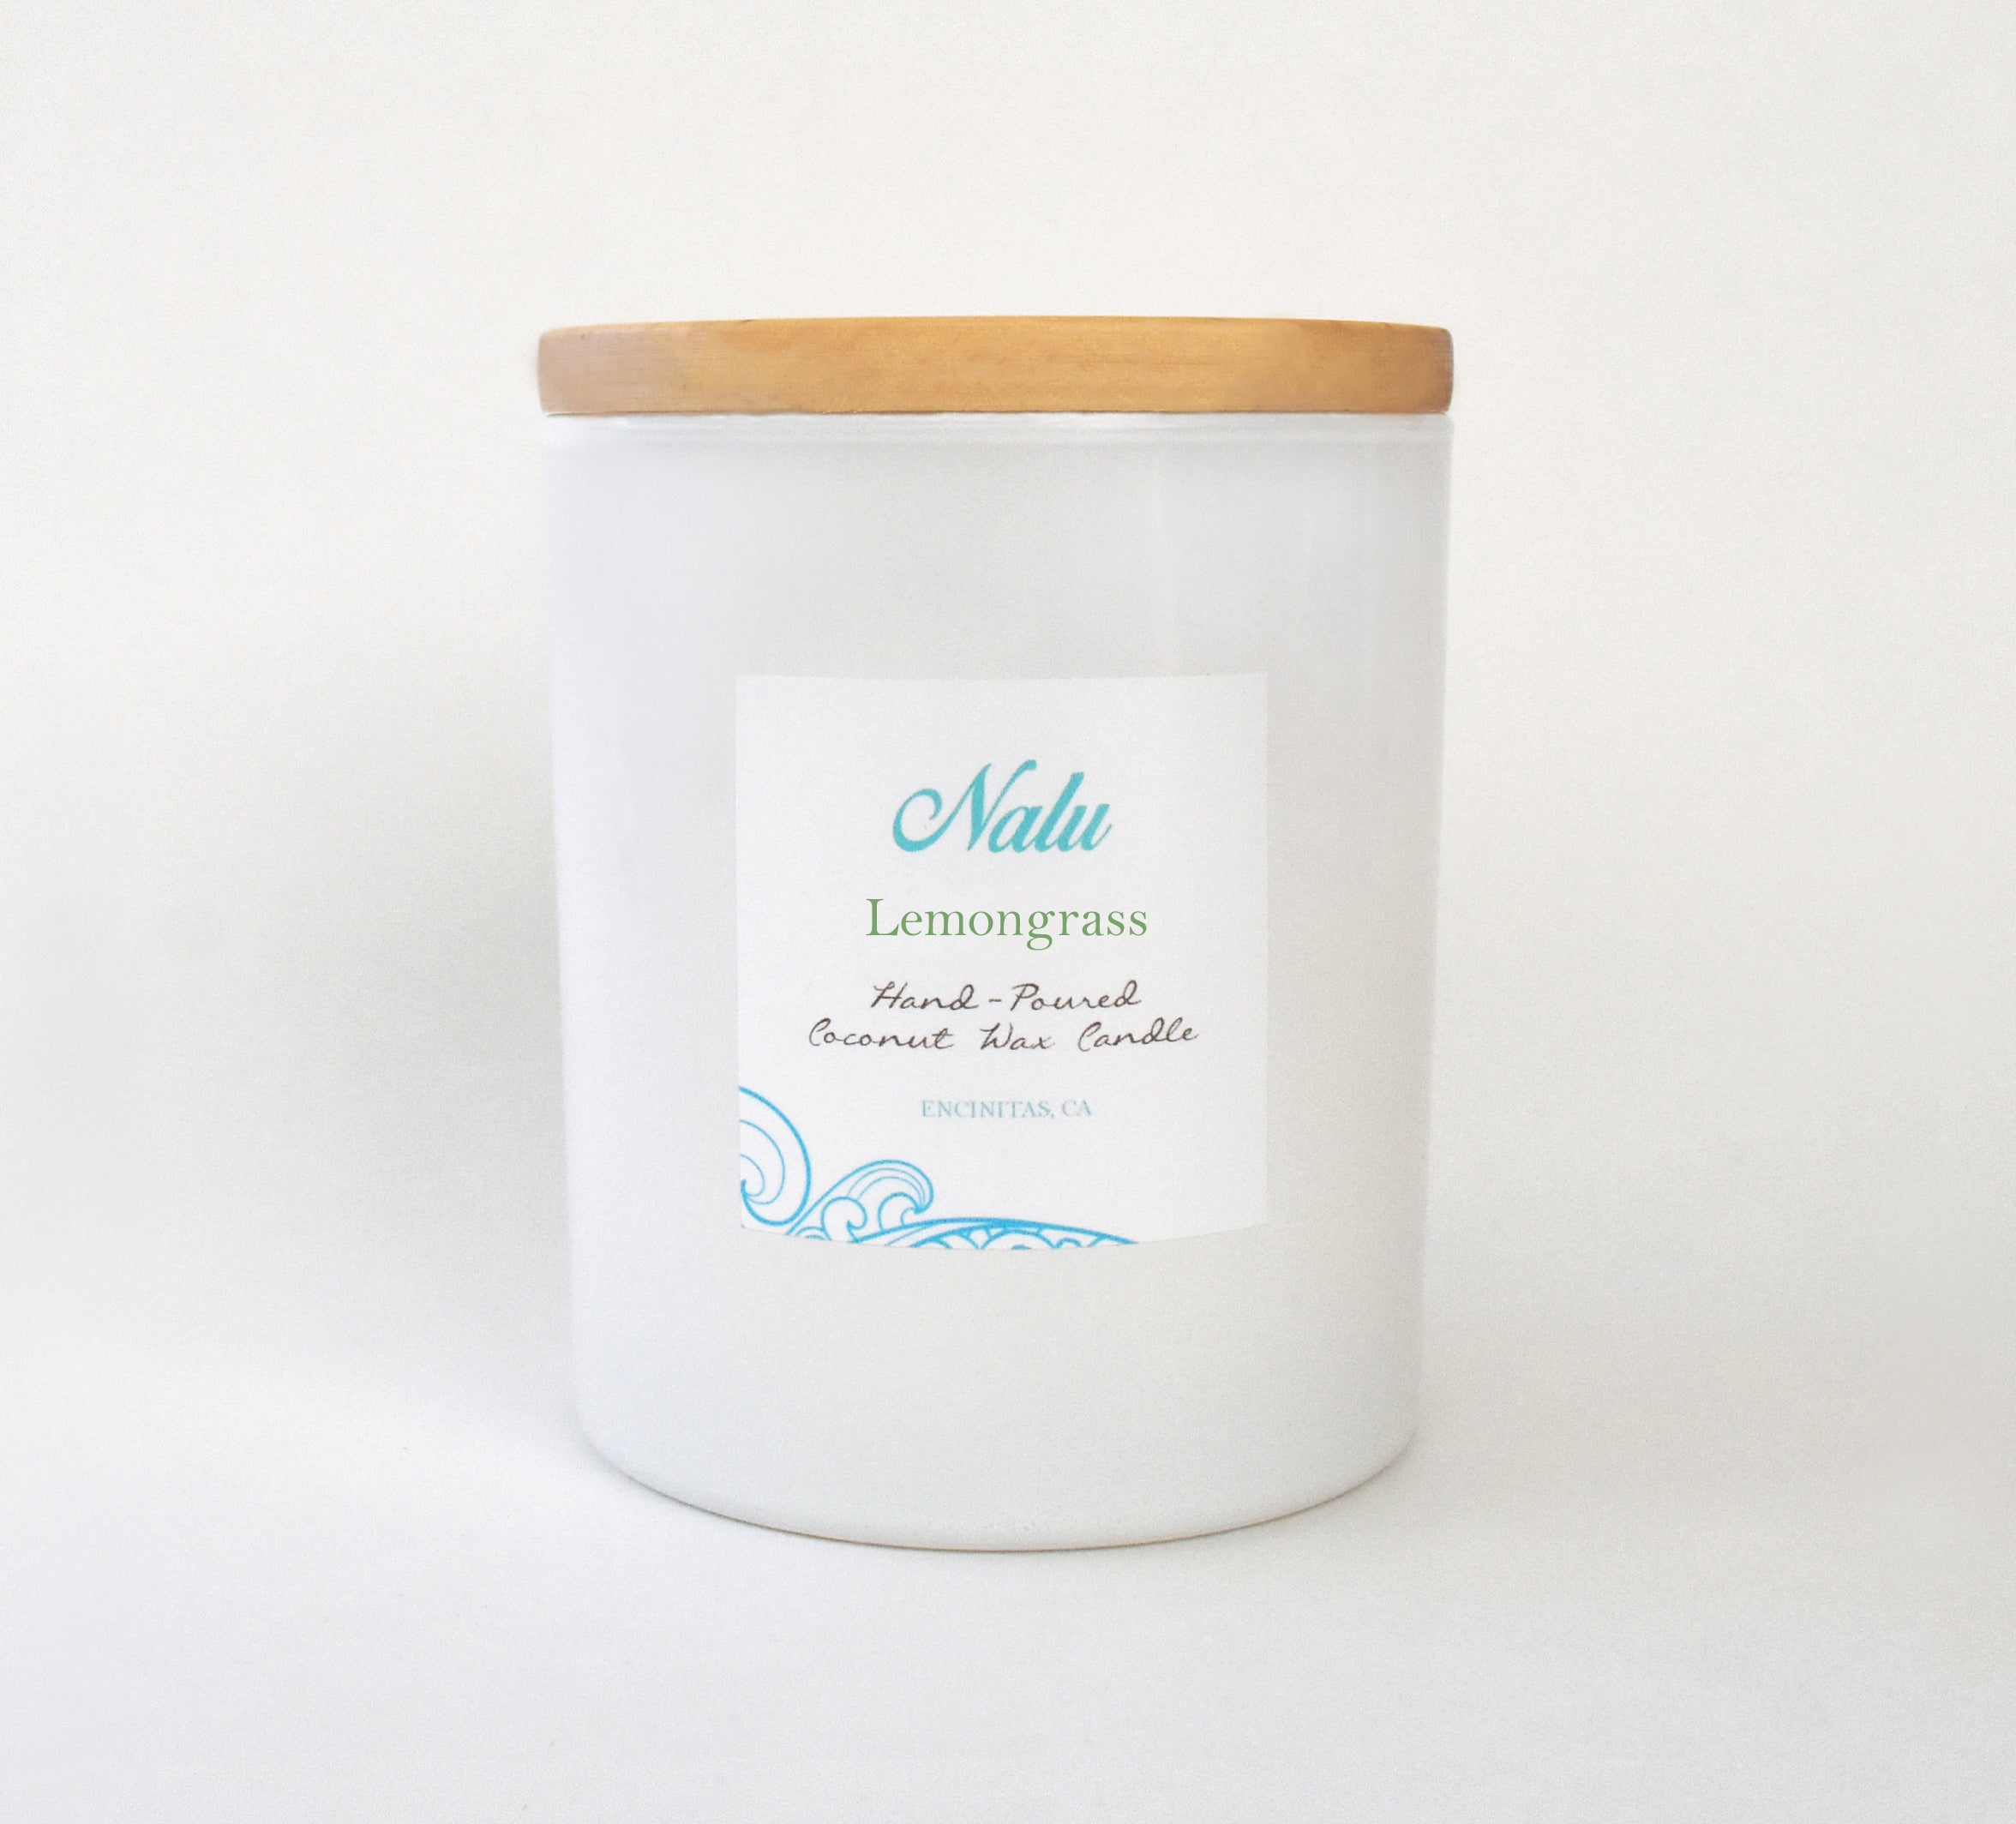 Lemongrass 10 oz. Candle